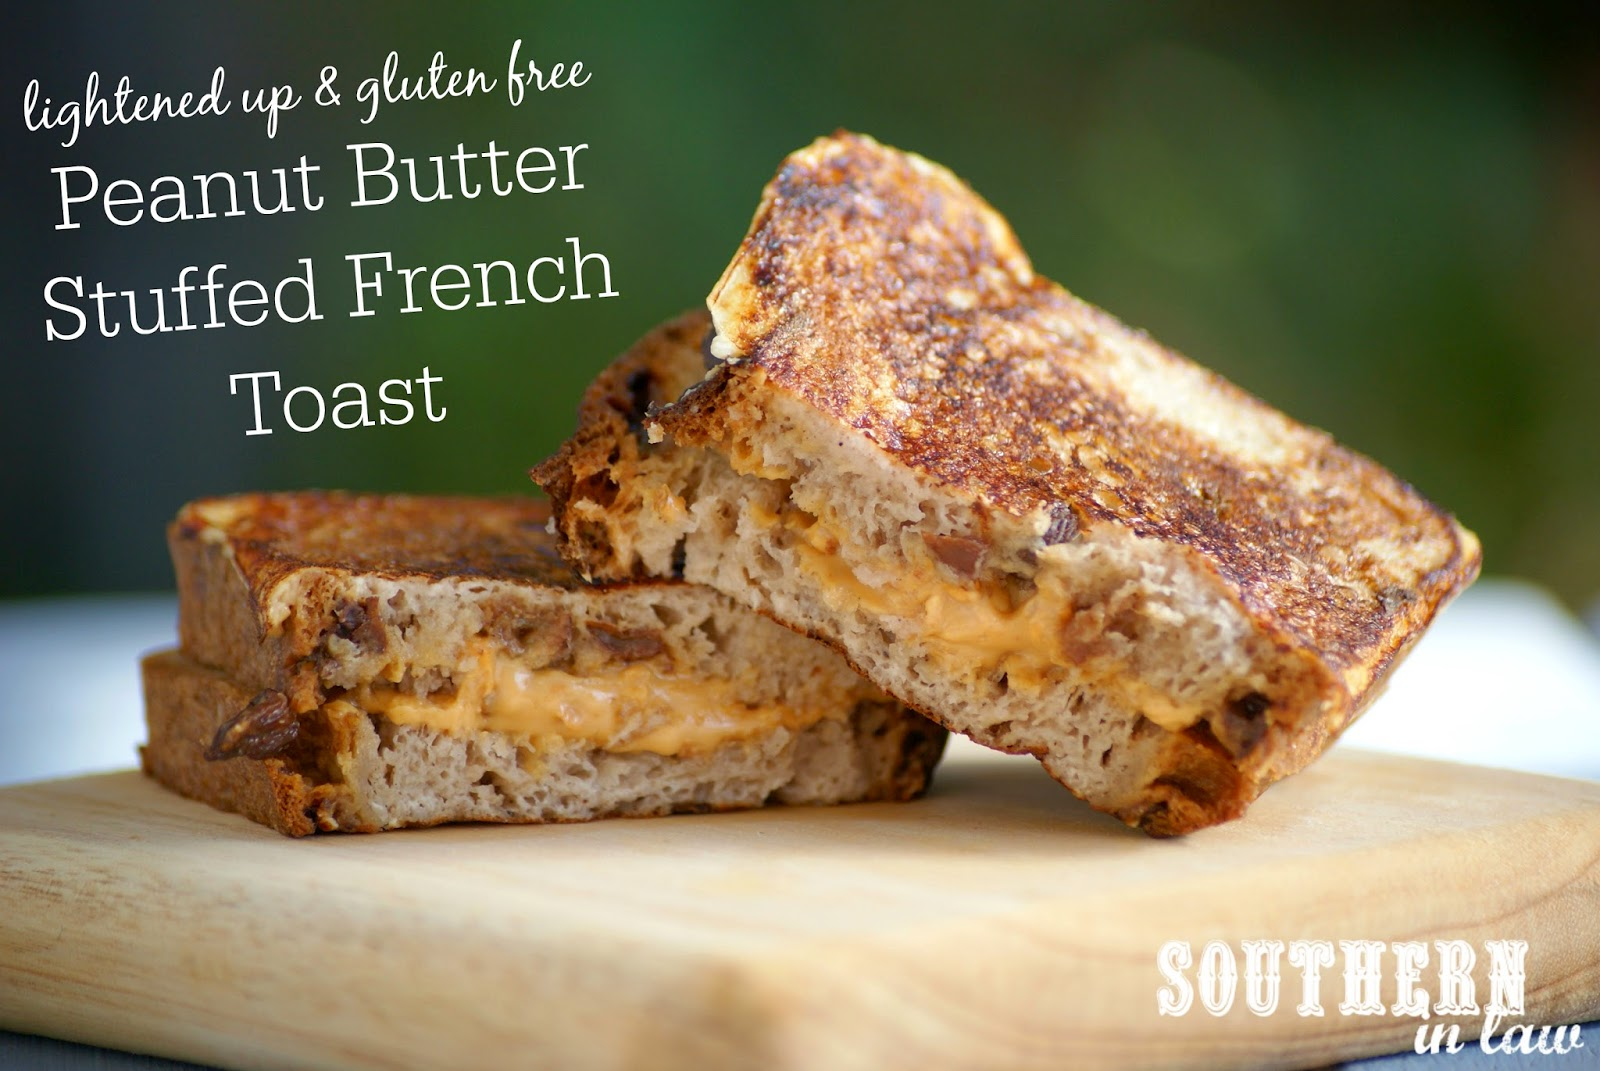 Peanut Butter Stuffed French Toast Recipe on Cinnamon Raisin Bread ...